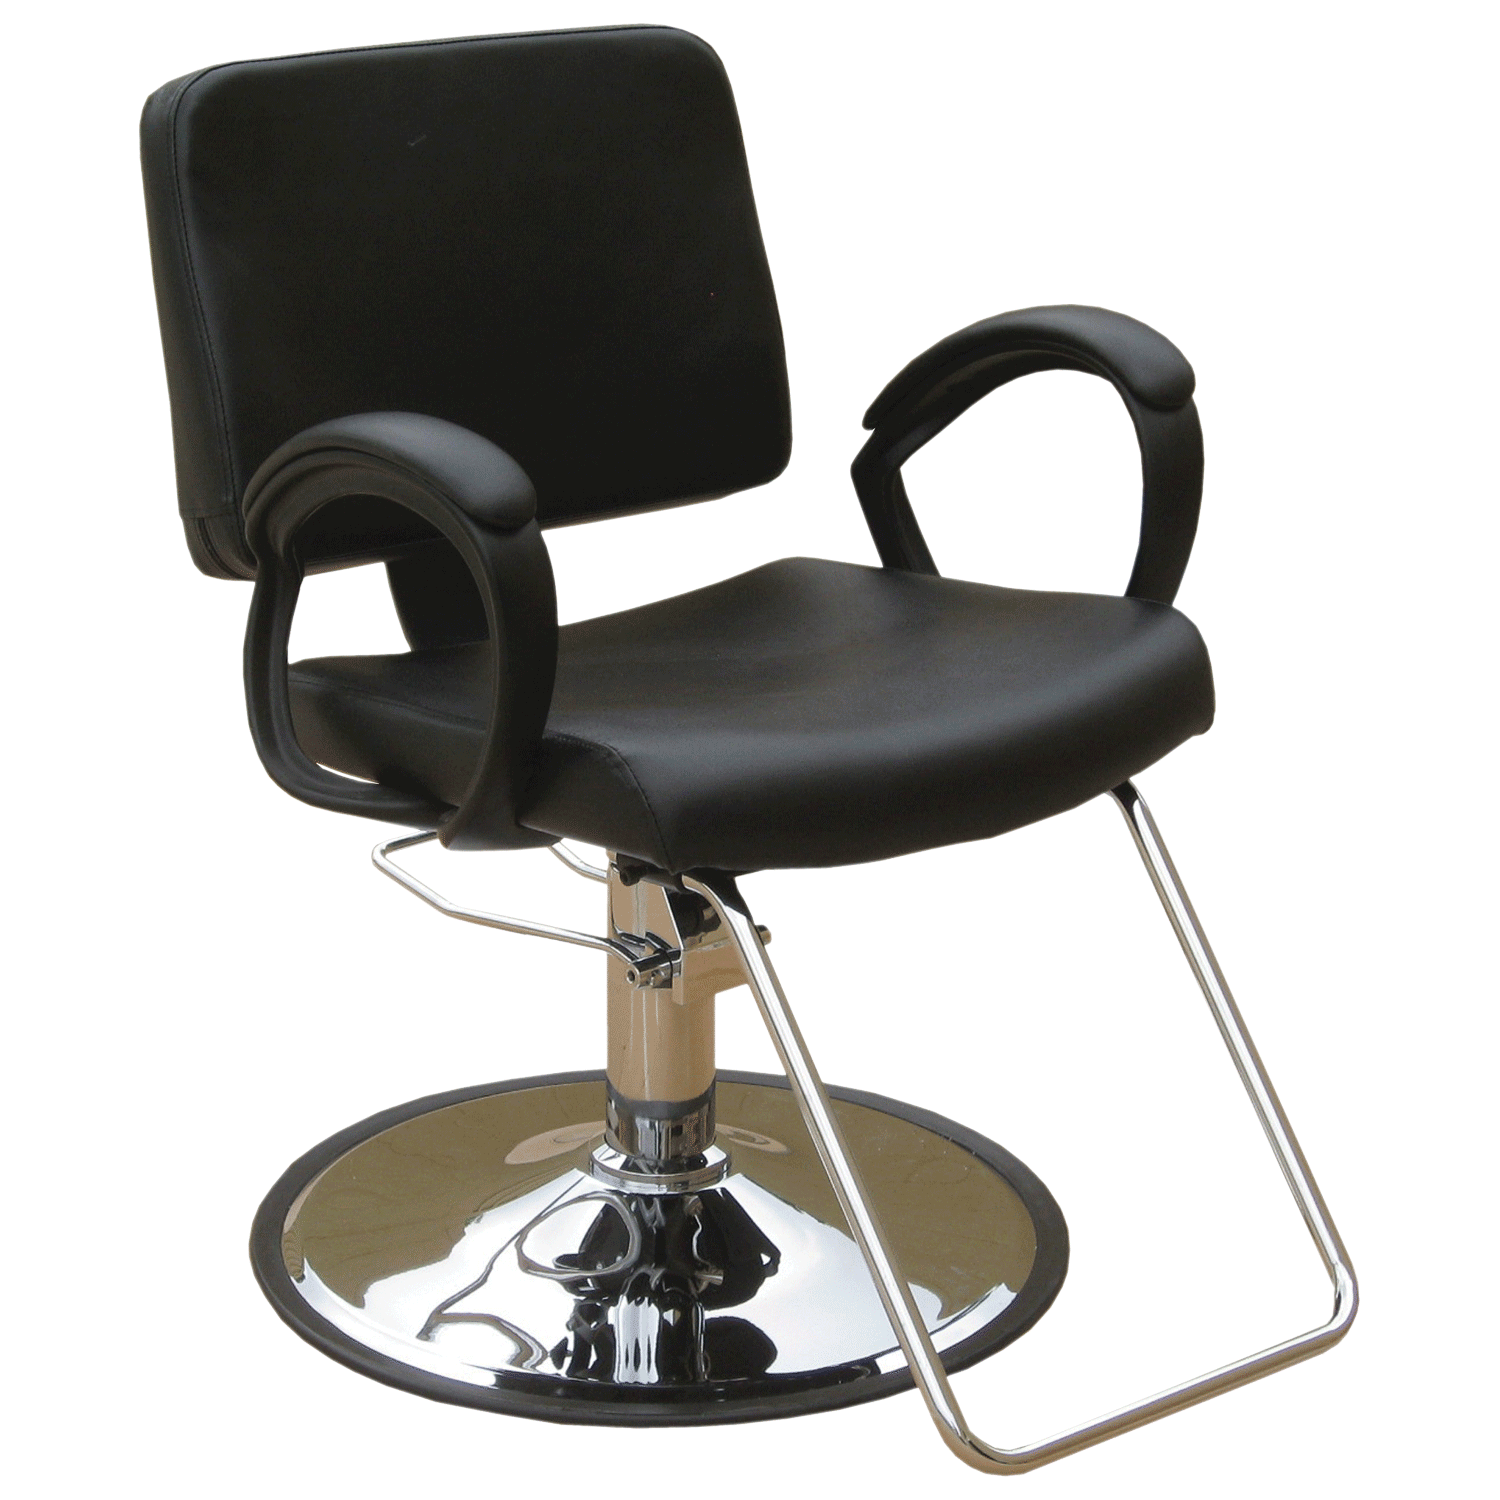 salon chair small shower chairs for elderly puresana ava styling with base